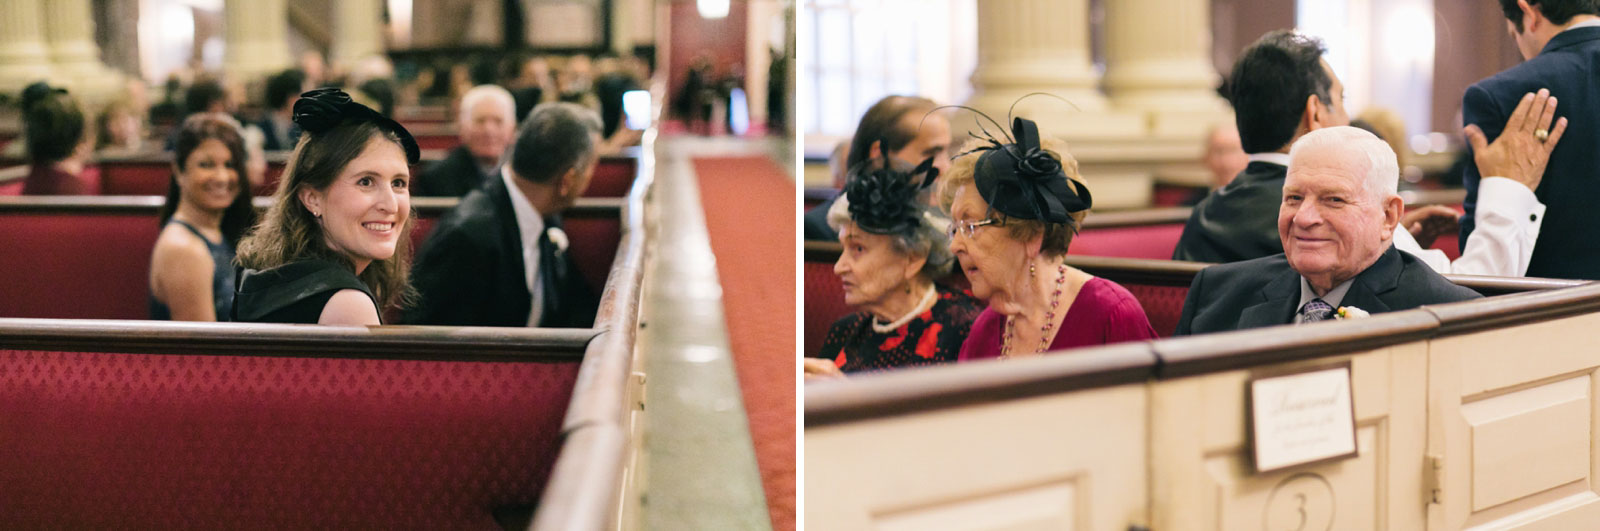 Wedding guests arrive and sit at red silk fabric pews at king's chapel waiting for ceremony to begin